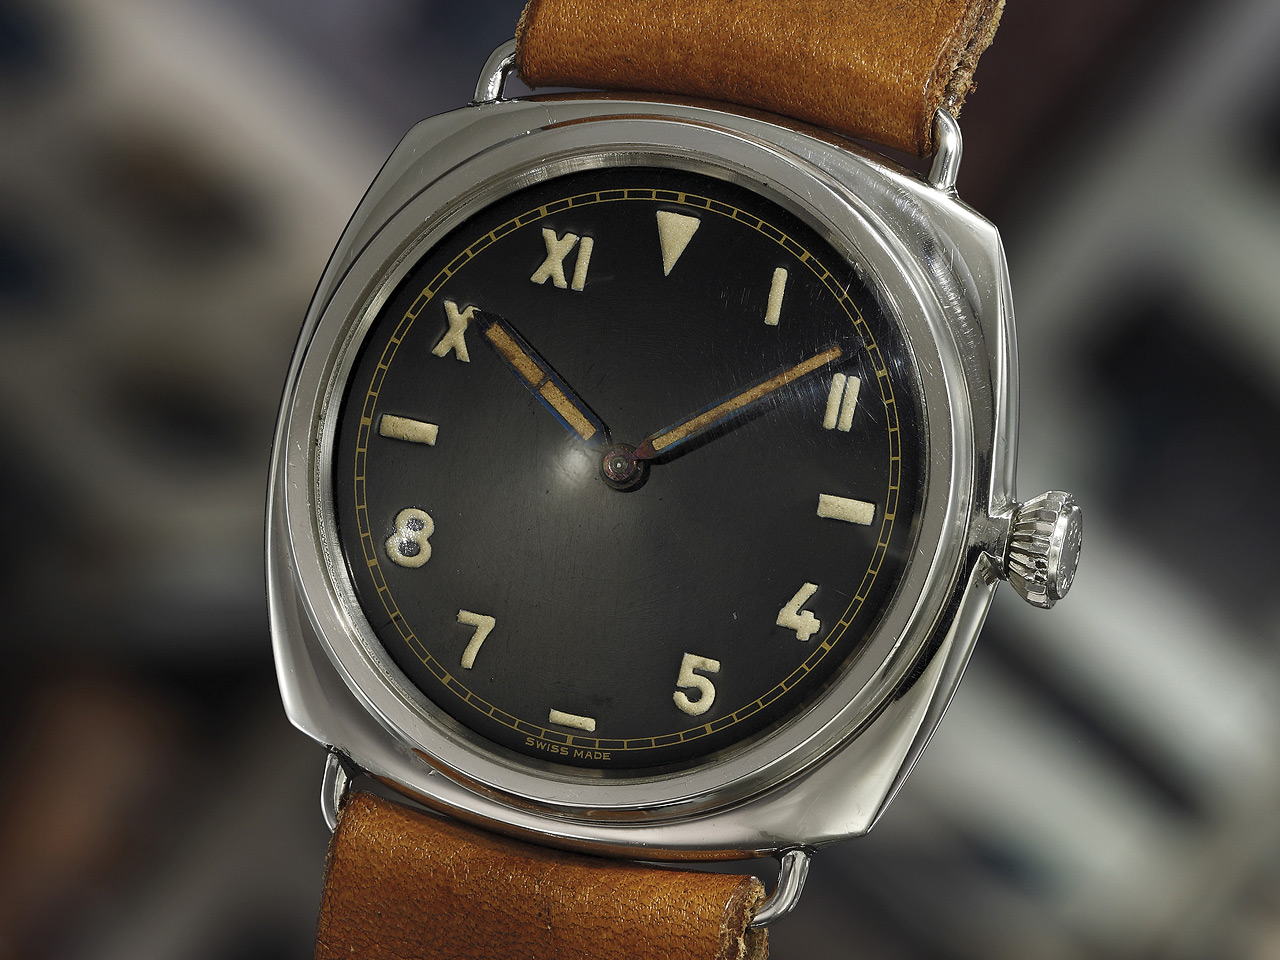 Winning Icons at Phillips – Vintage Panerai and other iconic